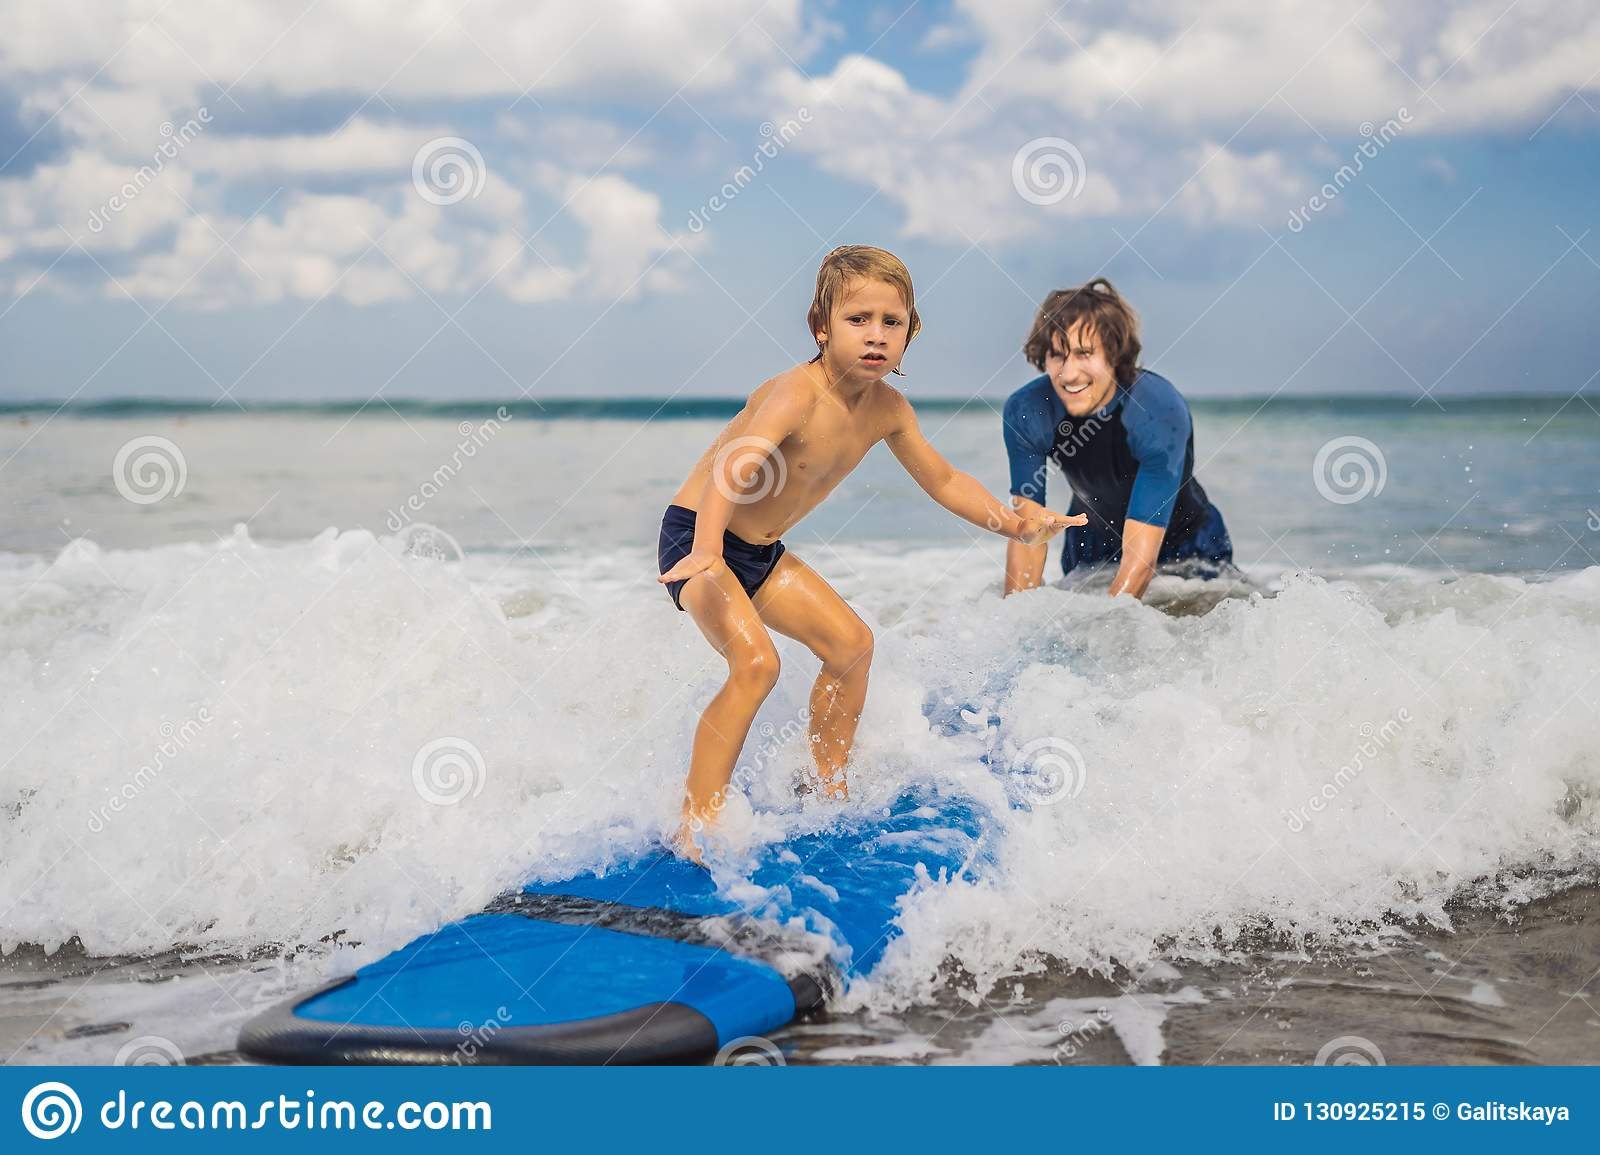 Father or instructor teaching his 4 year old son how to surf in